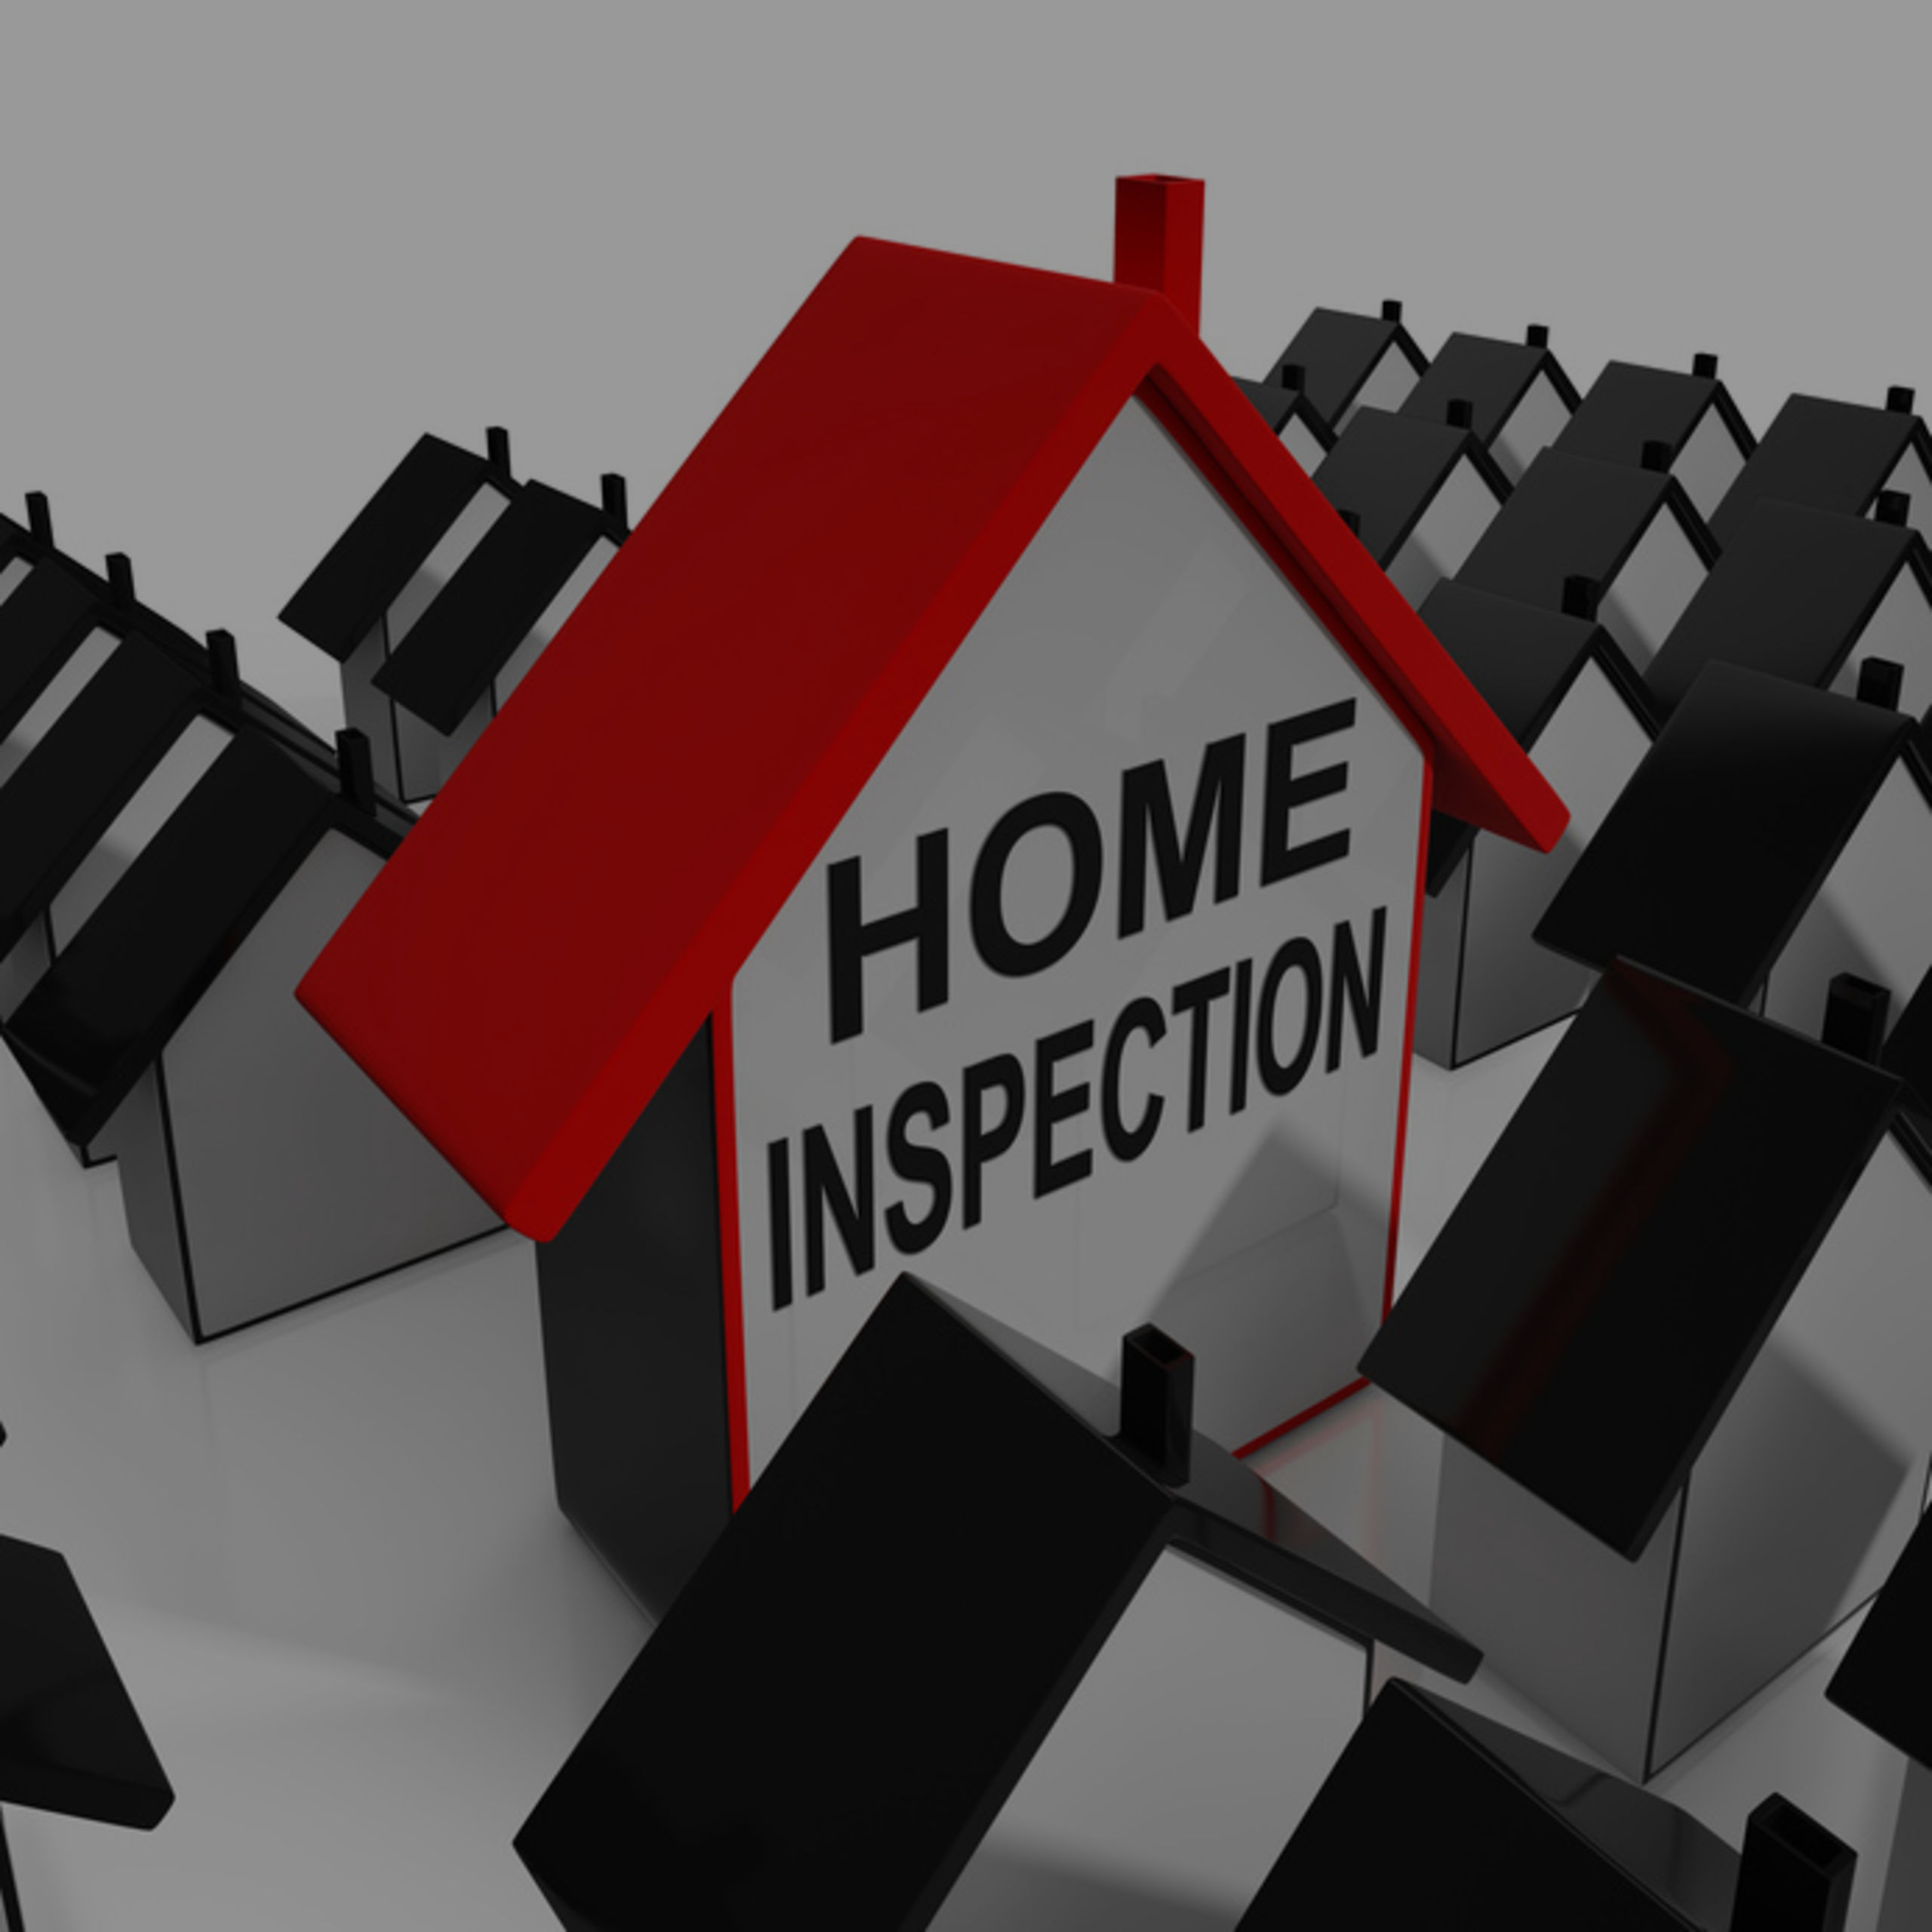 5 places to inspect in your home